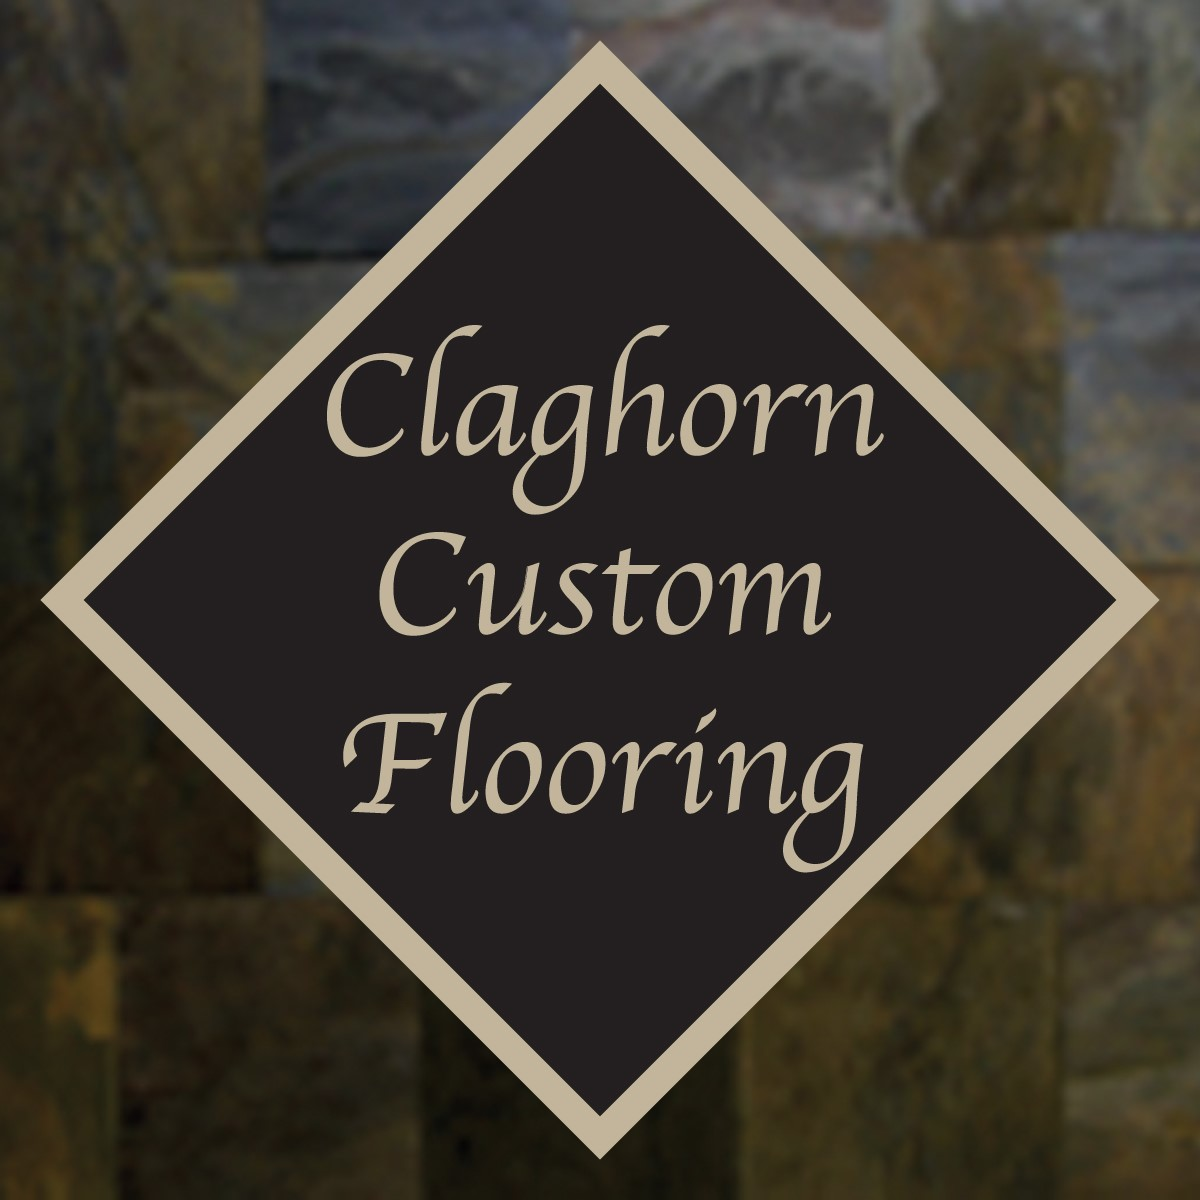 Claghorn Custom Flooring